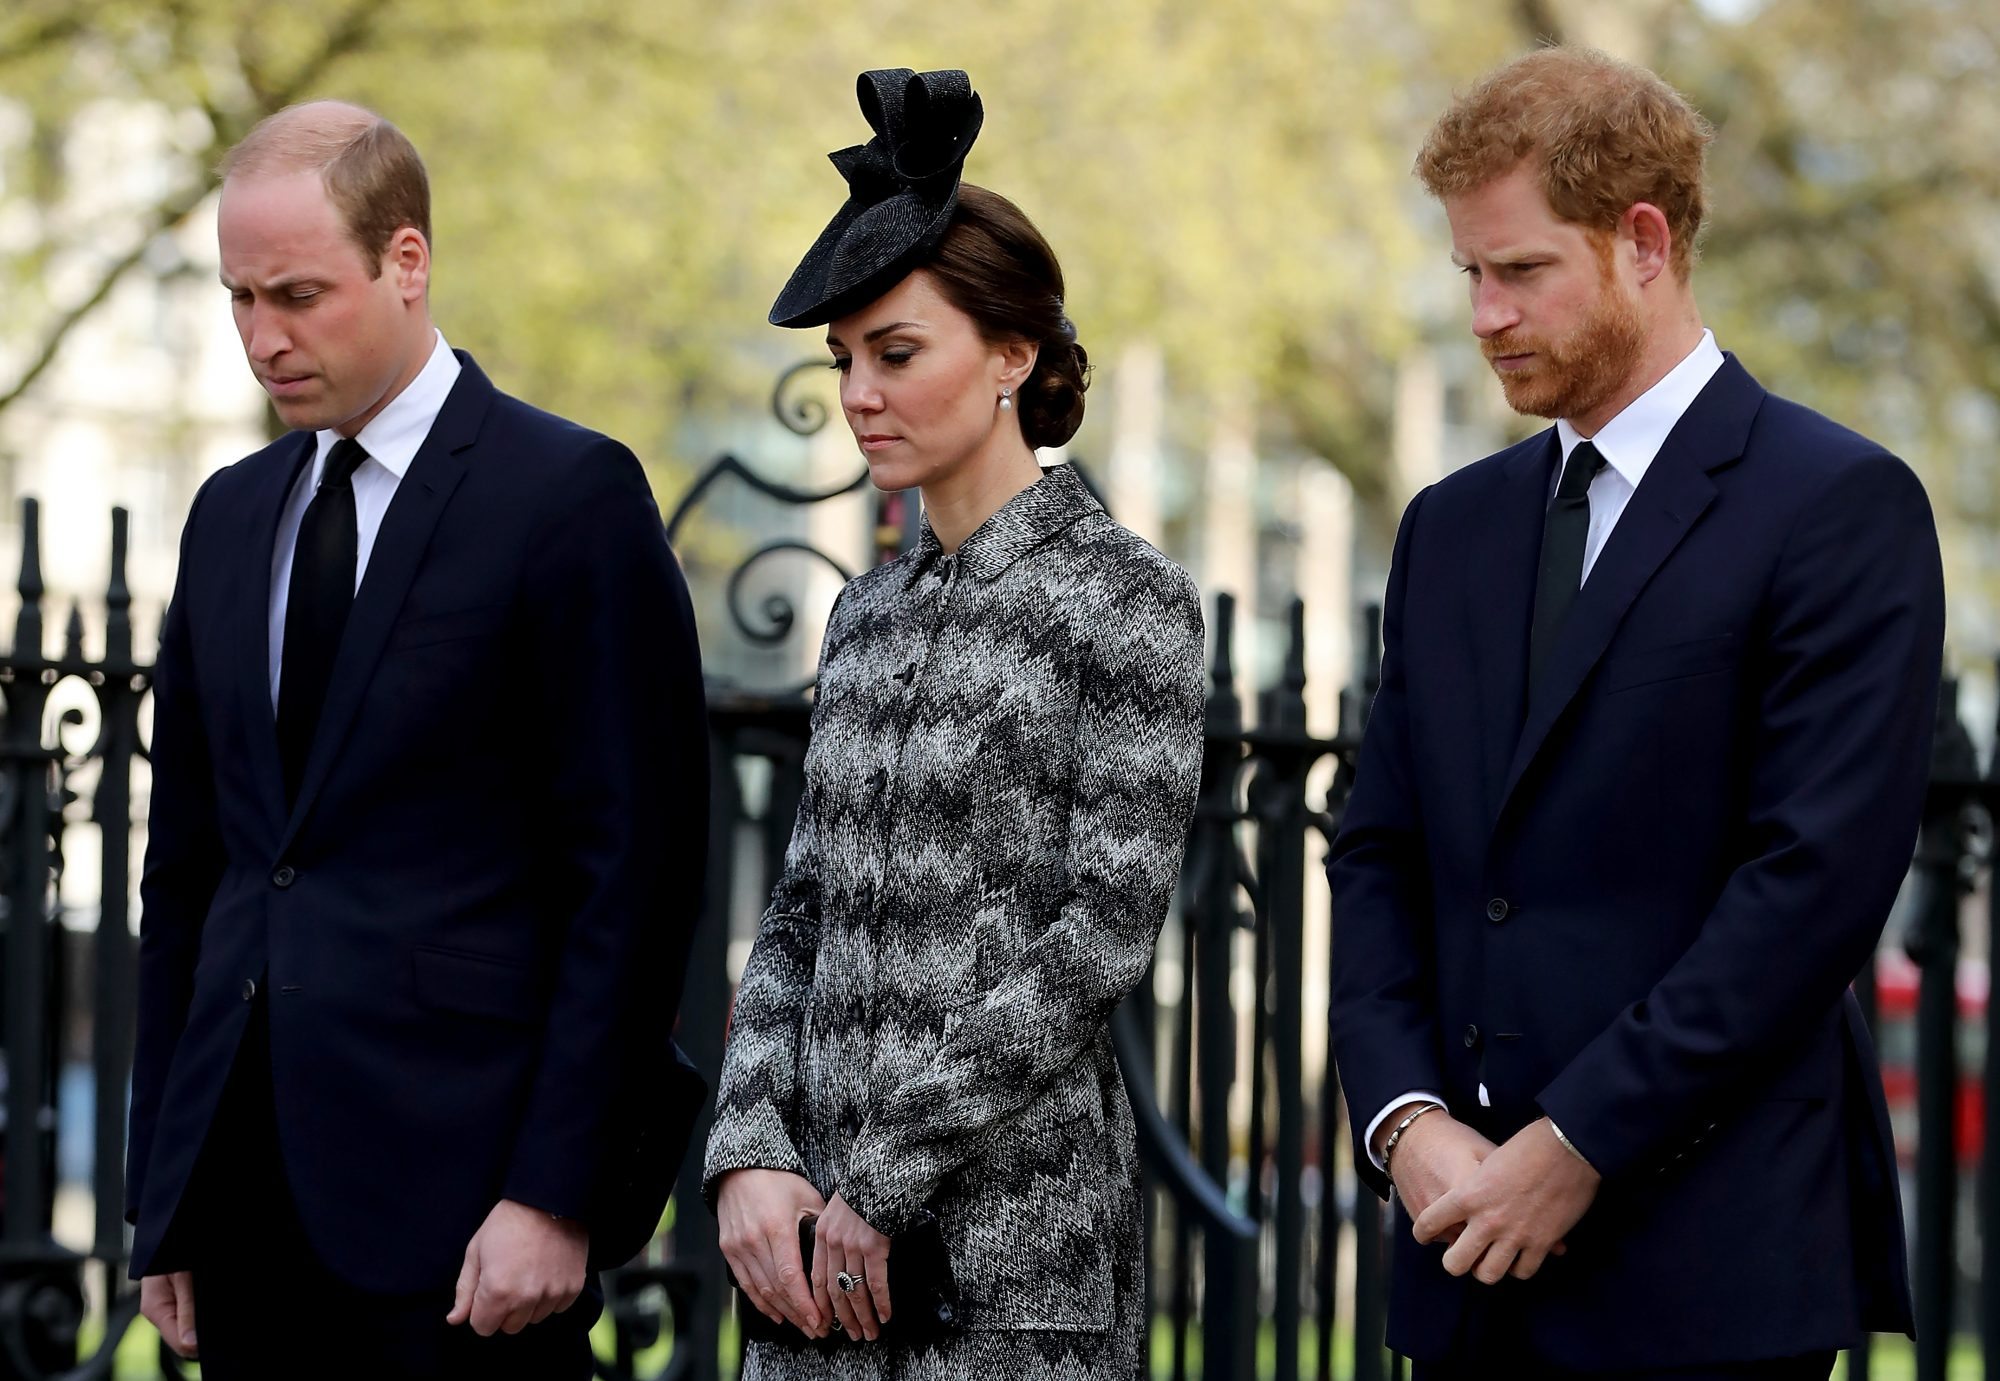 Princes William and Harry, Kate Middleton Will Rededicate Princess Diana's Grave This Weekend